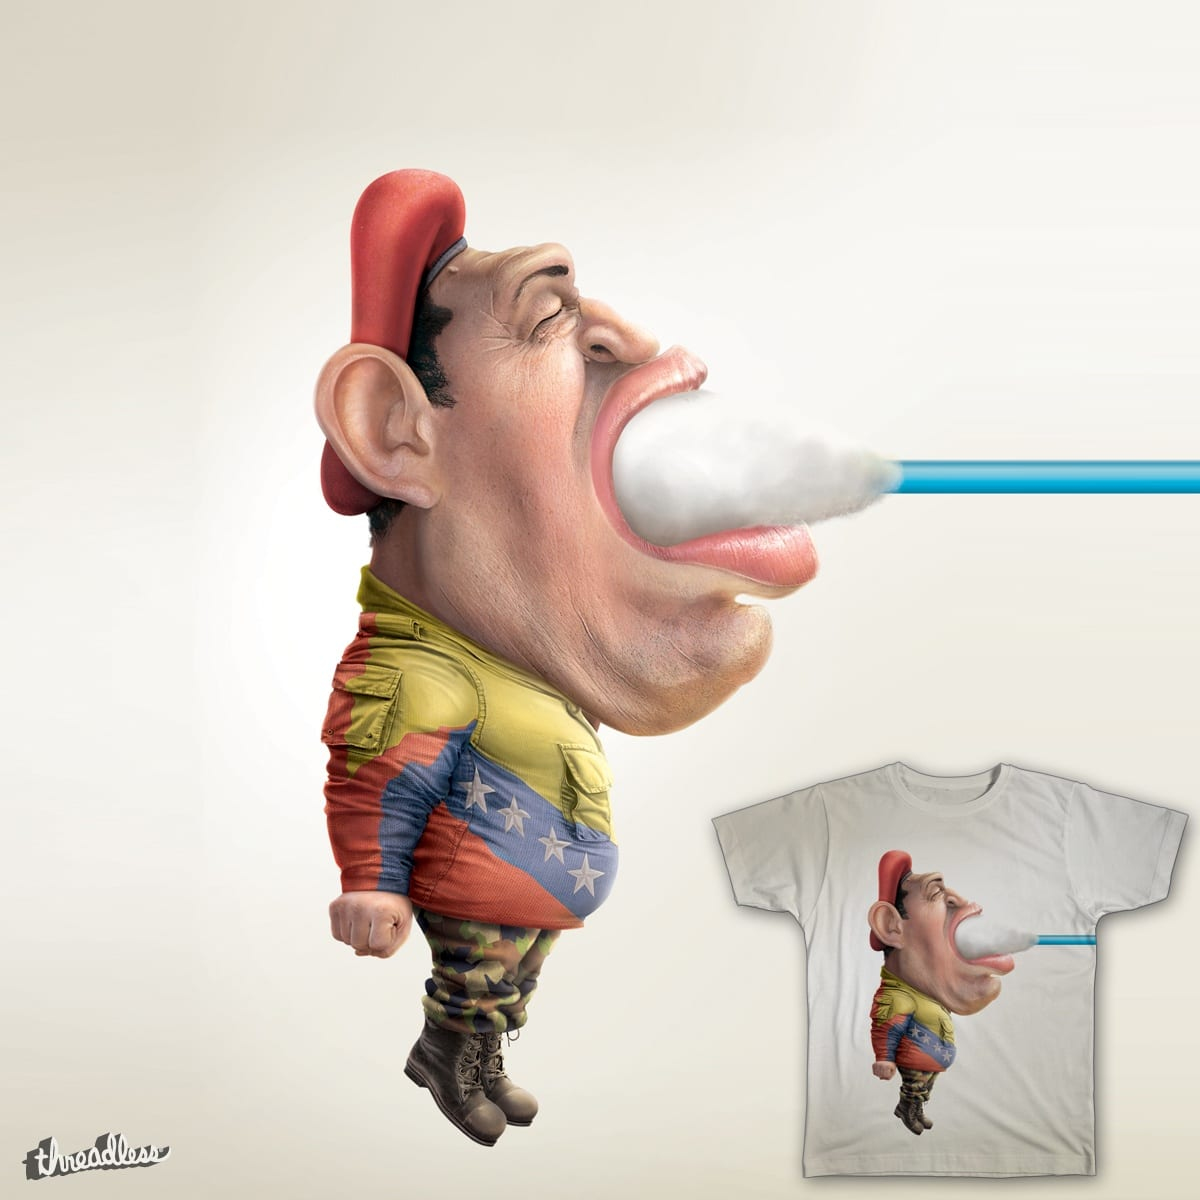 Clean out your ear from the trash you hear - Chavez by alopraestudio on Threadless